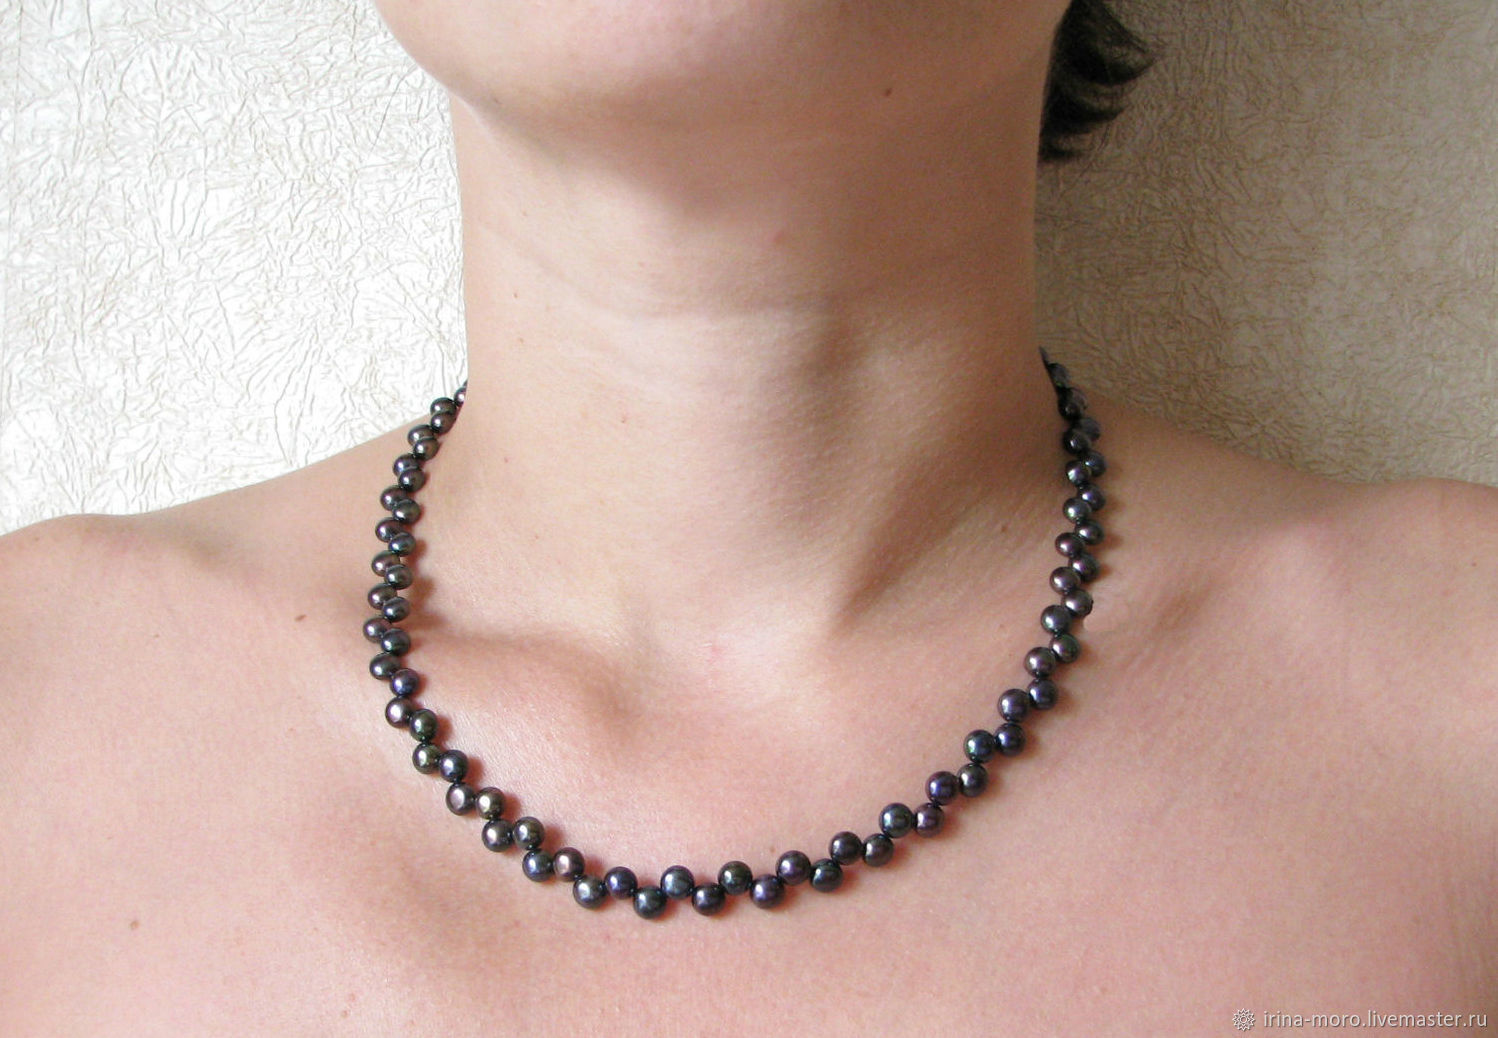 4159c519f5 ... Necklaces & Beads handmade. Necklace 'Summer'choker necklace,necklace  pearl,jewelry